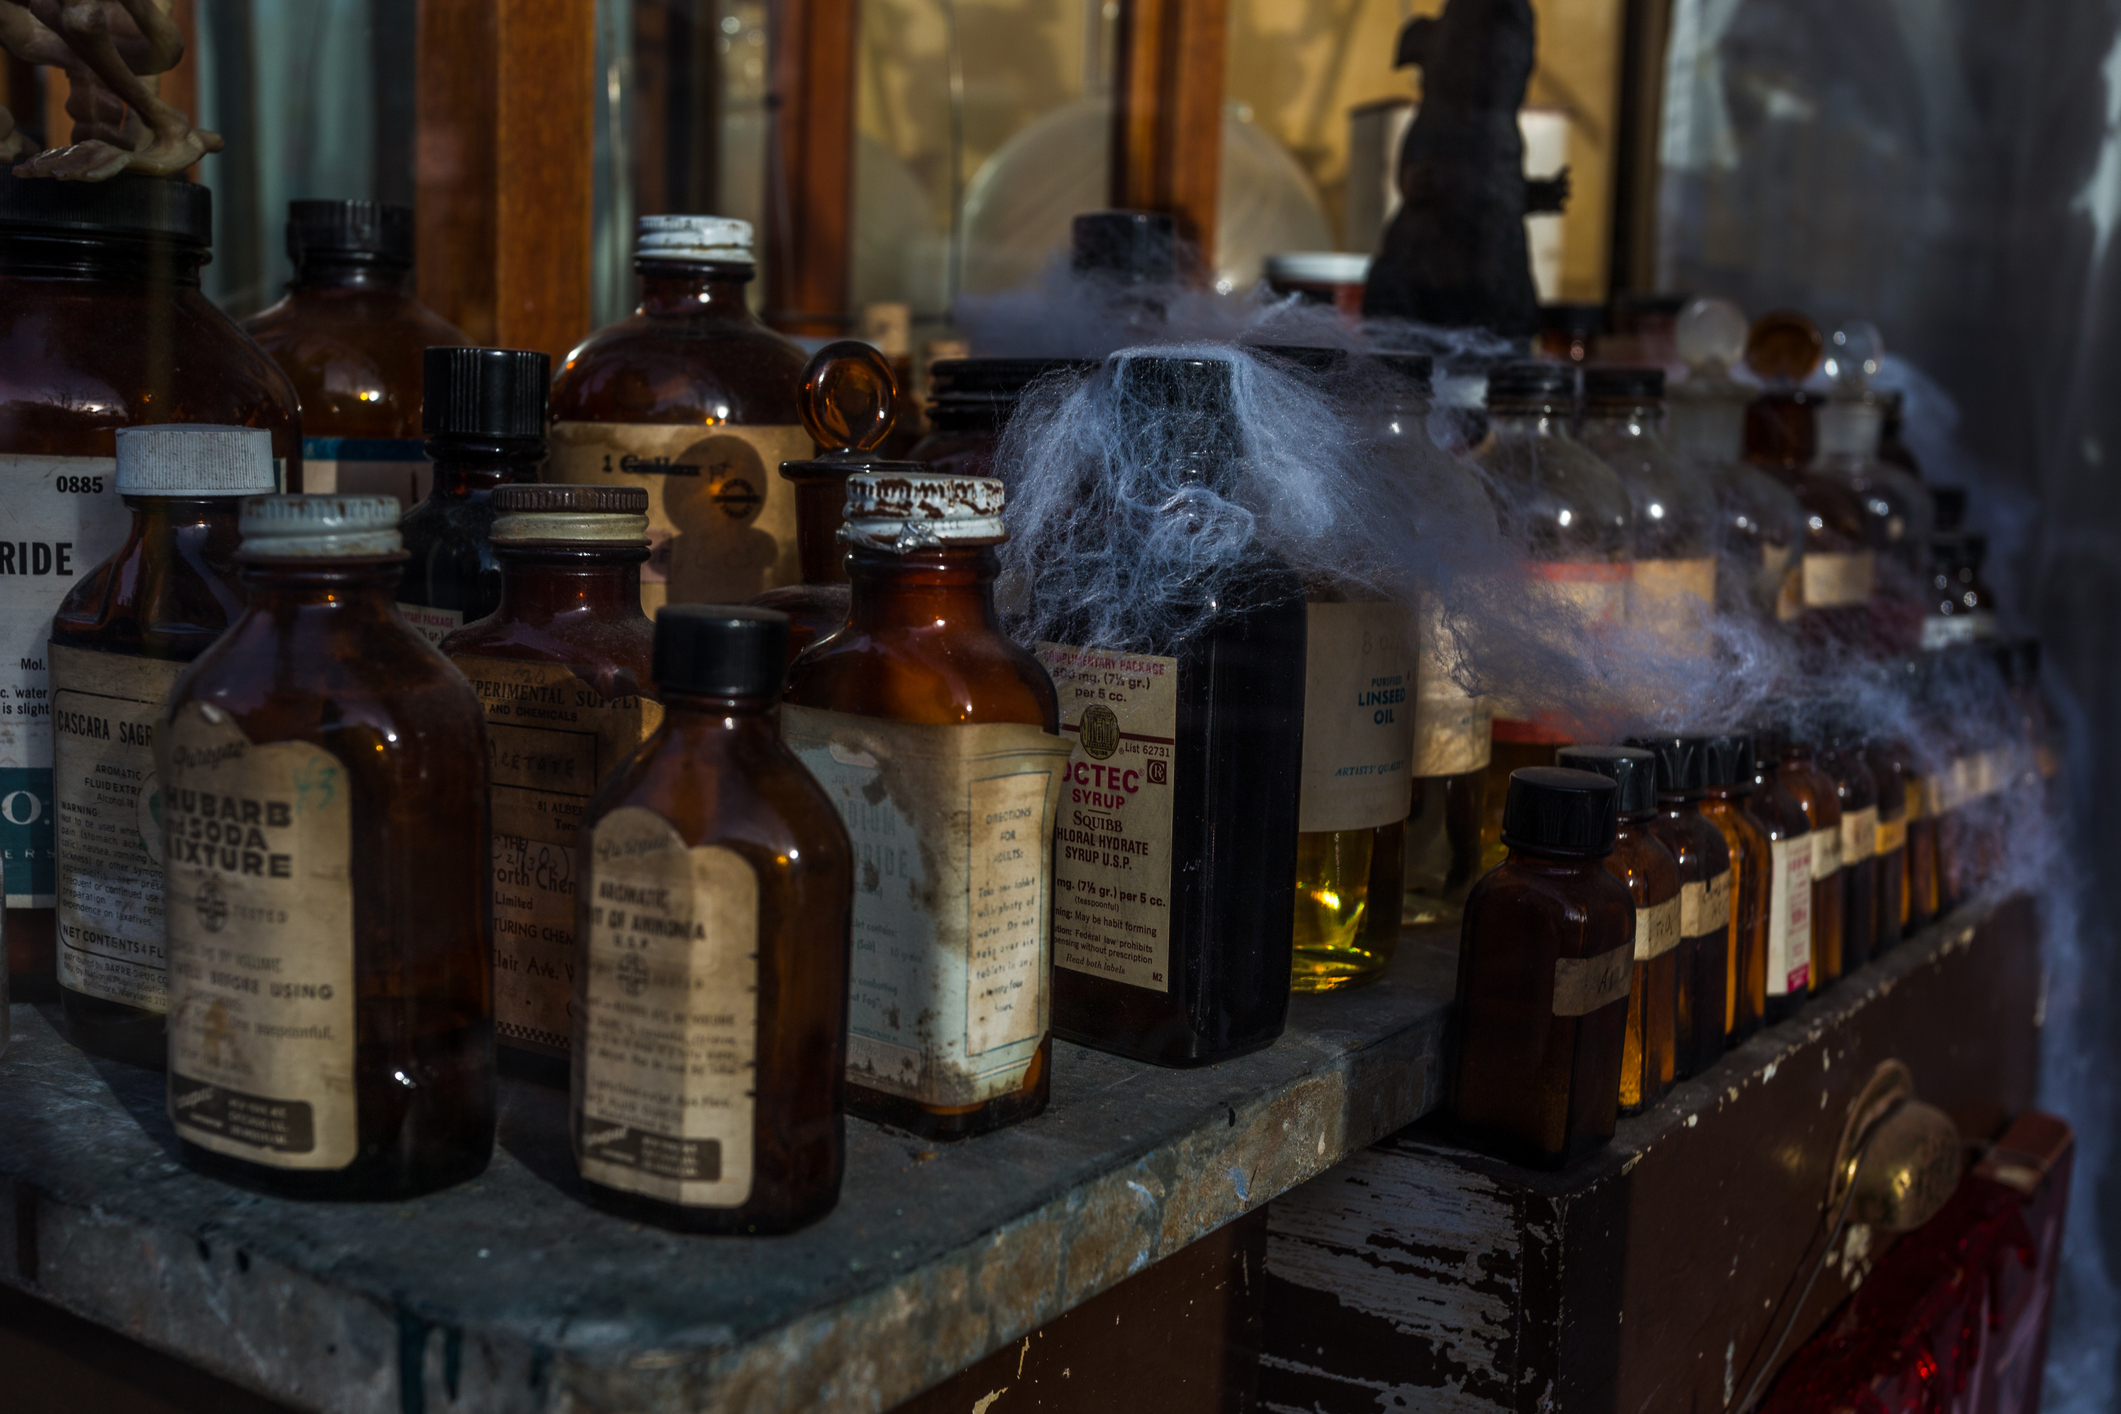 Display of old apothecary bottles